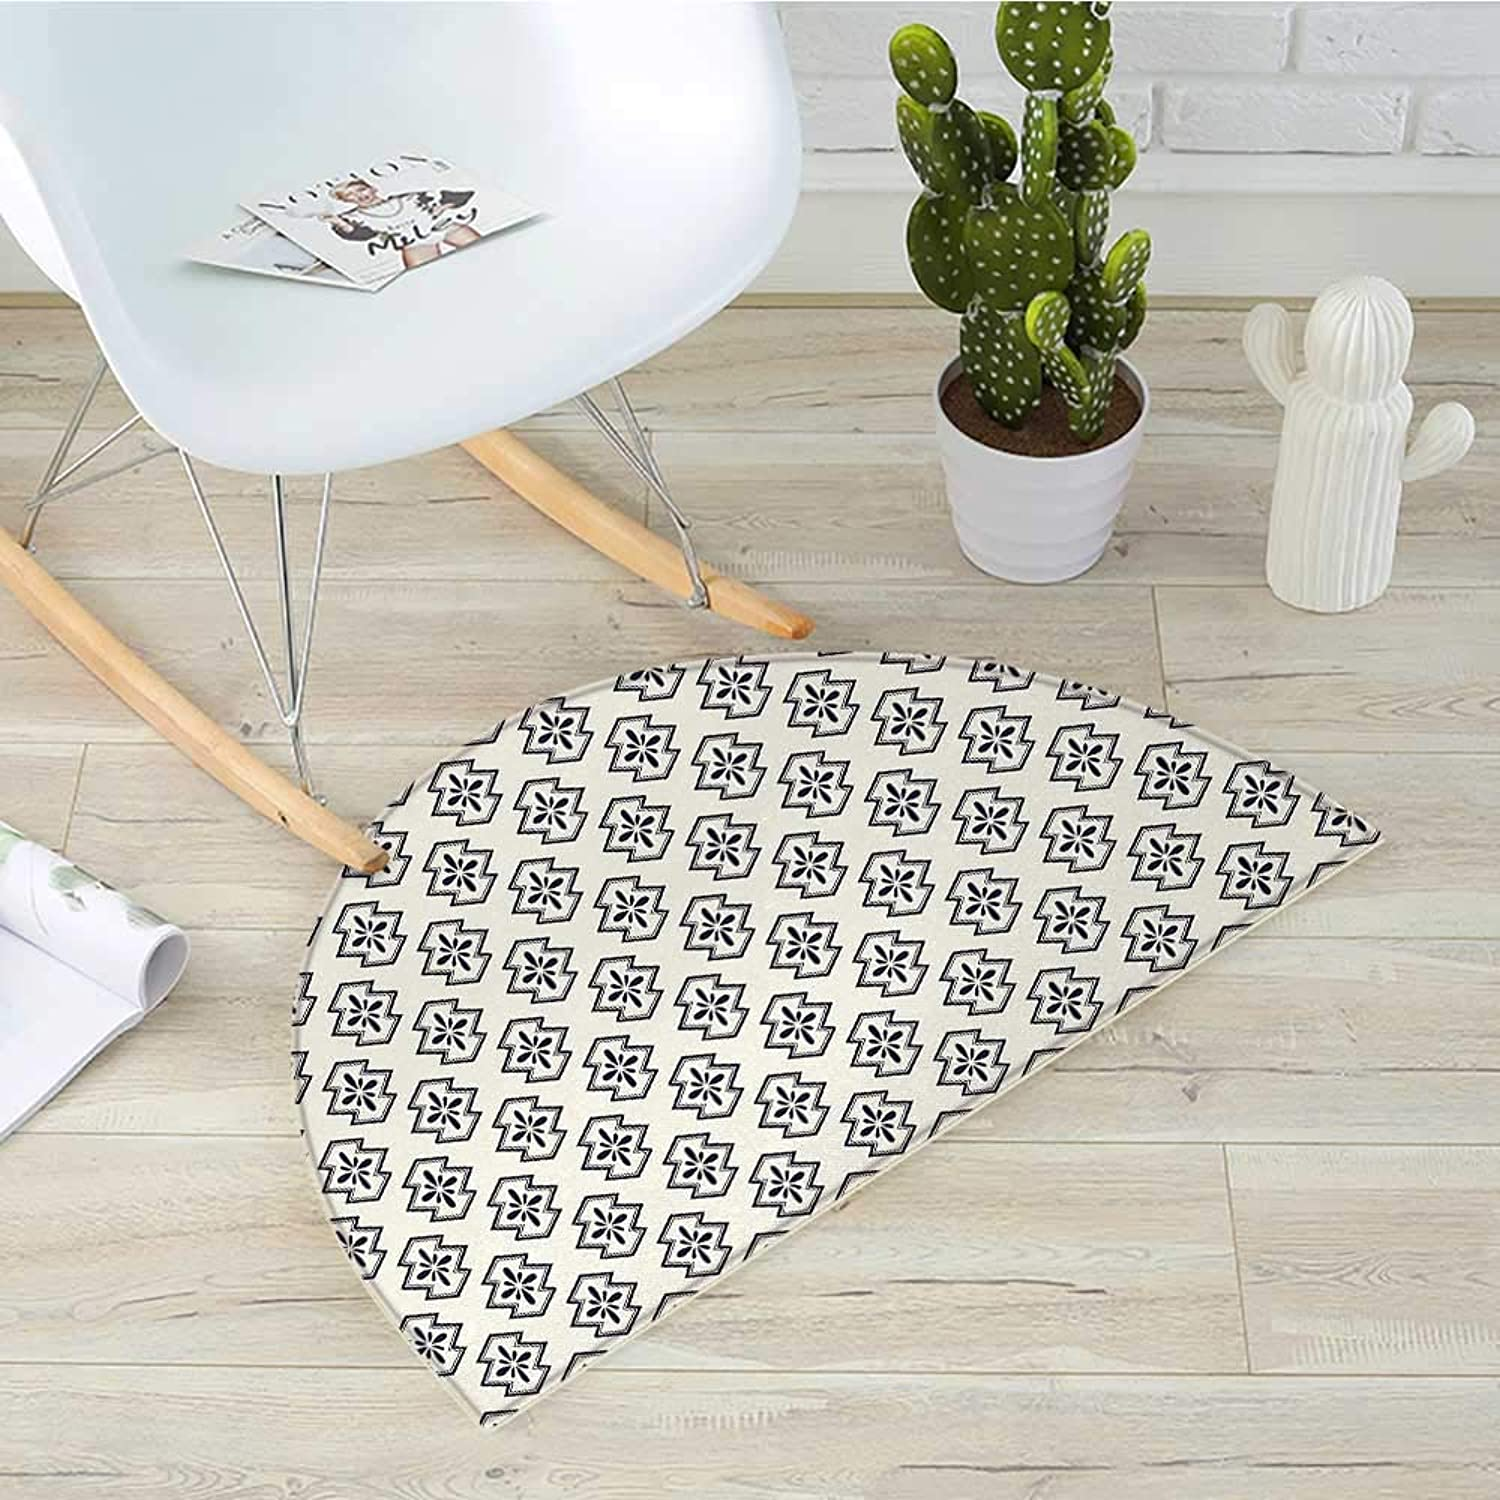 Geometric Semicircle Doormat Eastern Flower Patterned Abstract Geometric Shapes Oriental Asian Culture Halfmoon doormats H 31.5  xD 47.2  Dark bluee Cream